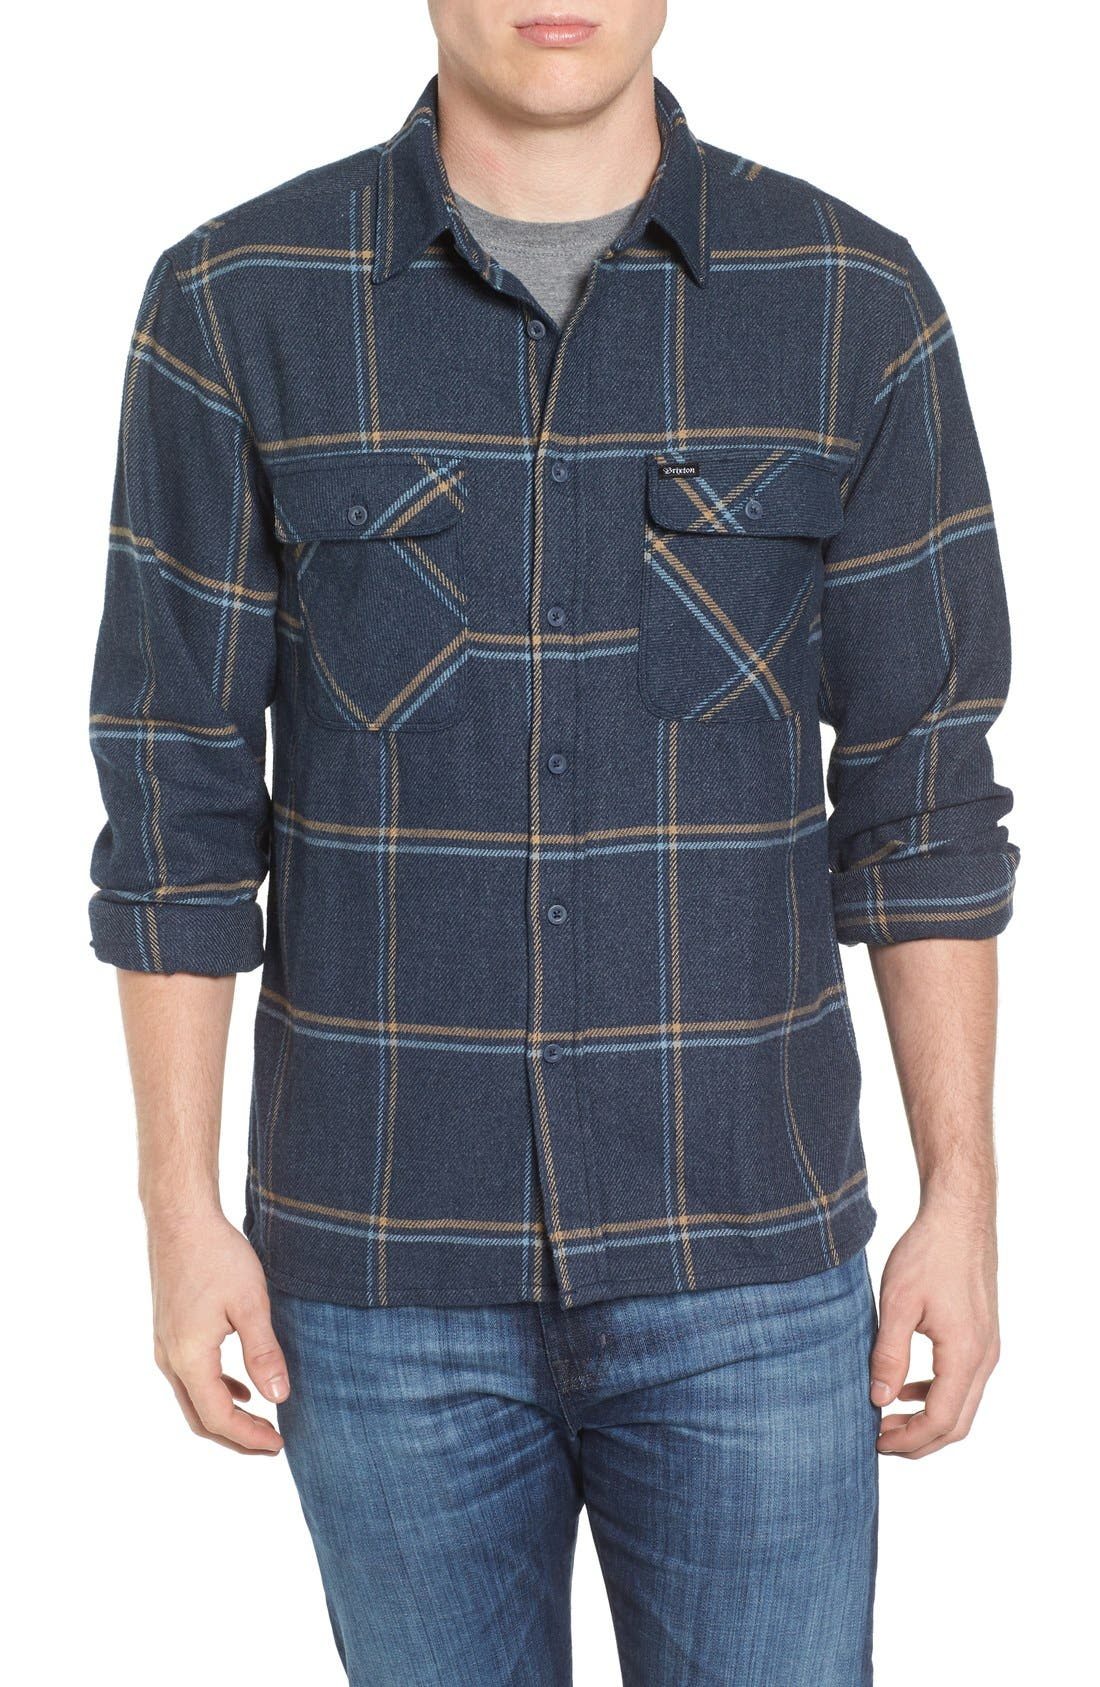 'Archie' Plaid Flannel Shirt,                             Main thumbnail 1, color,                             Navy